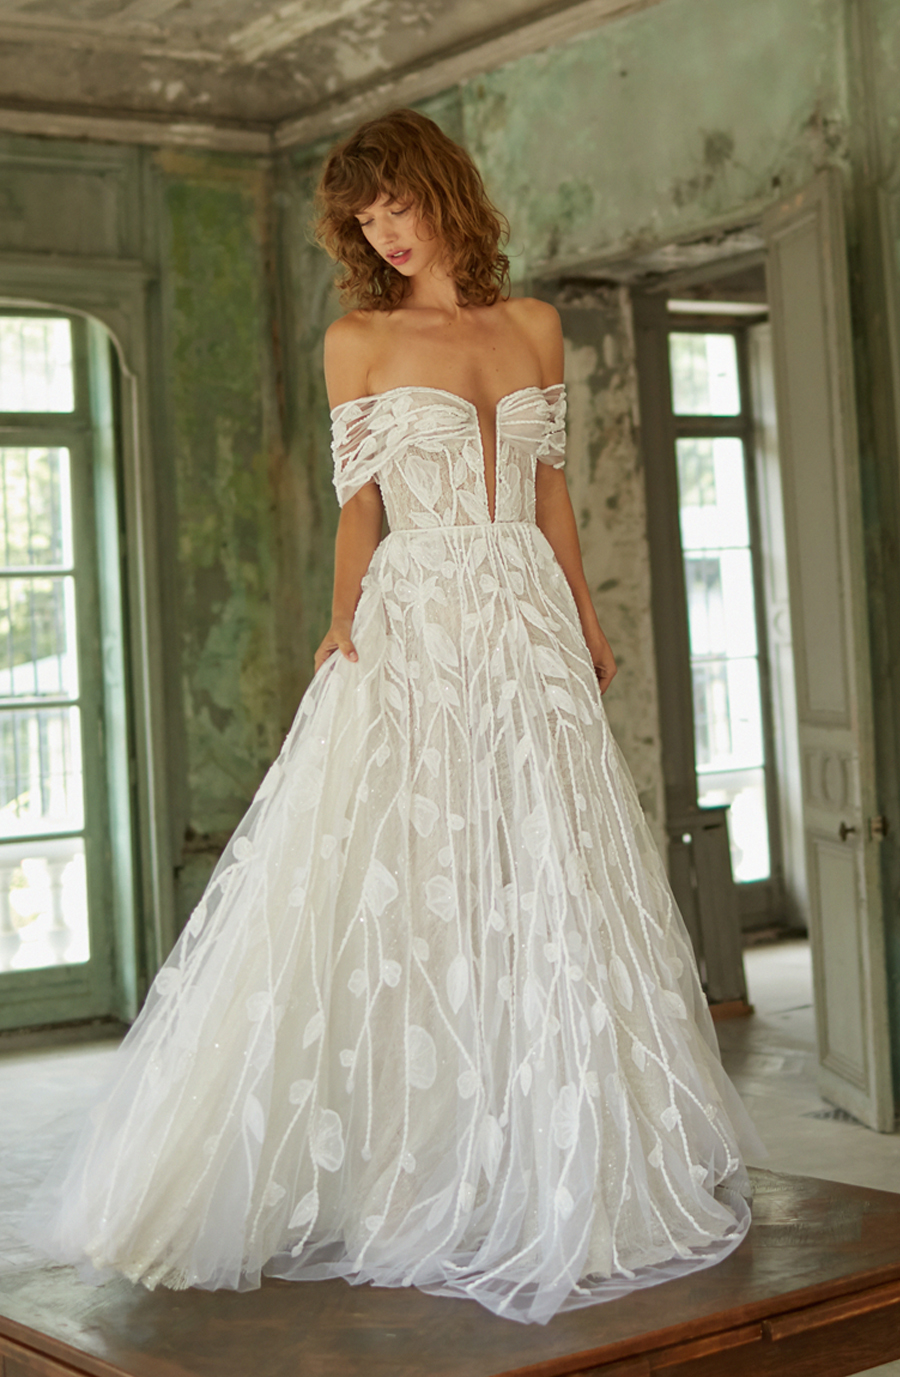 Dana Harel bridal gown nature greenery wedding planner french riviera